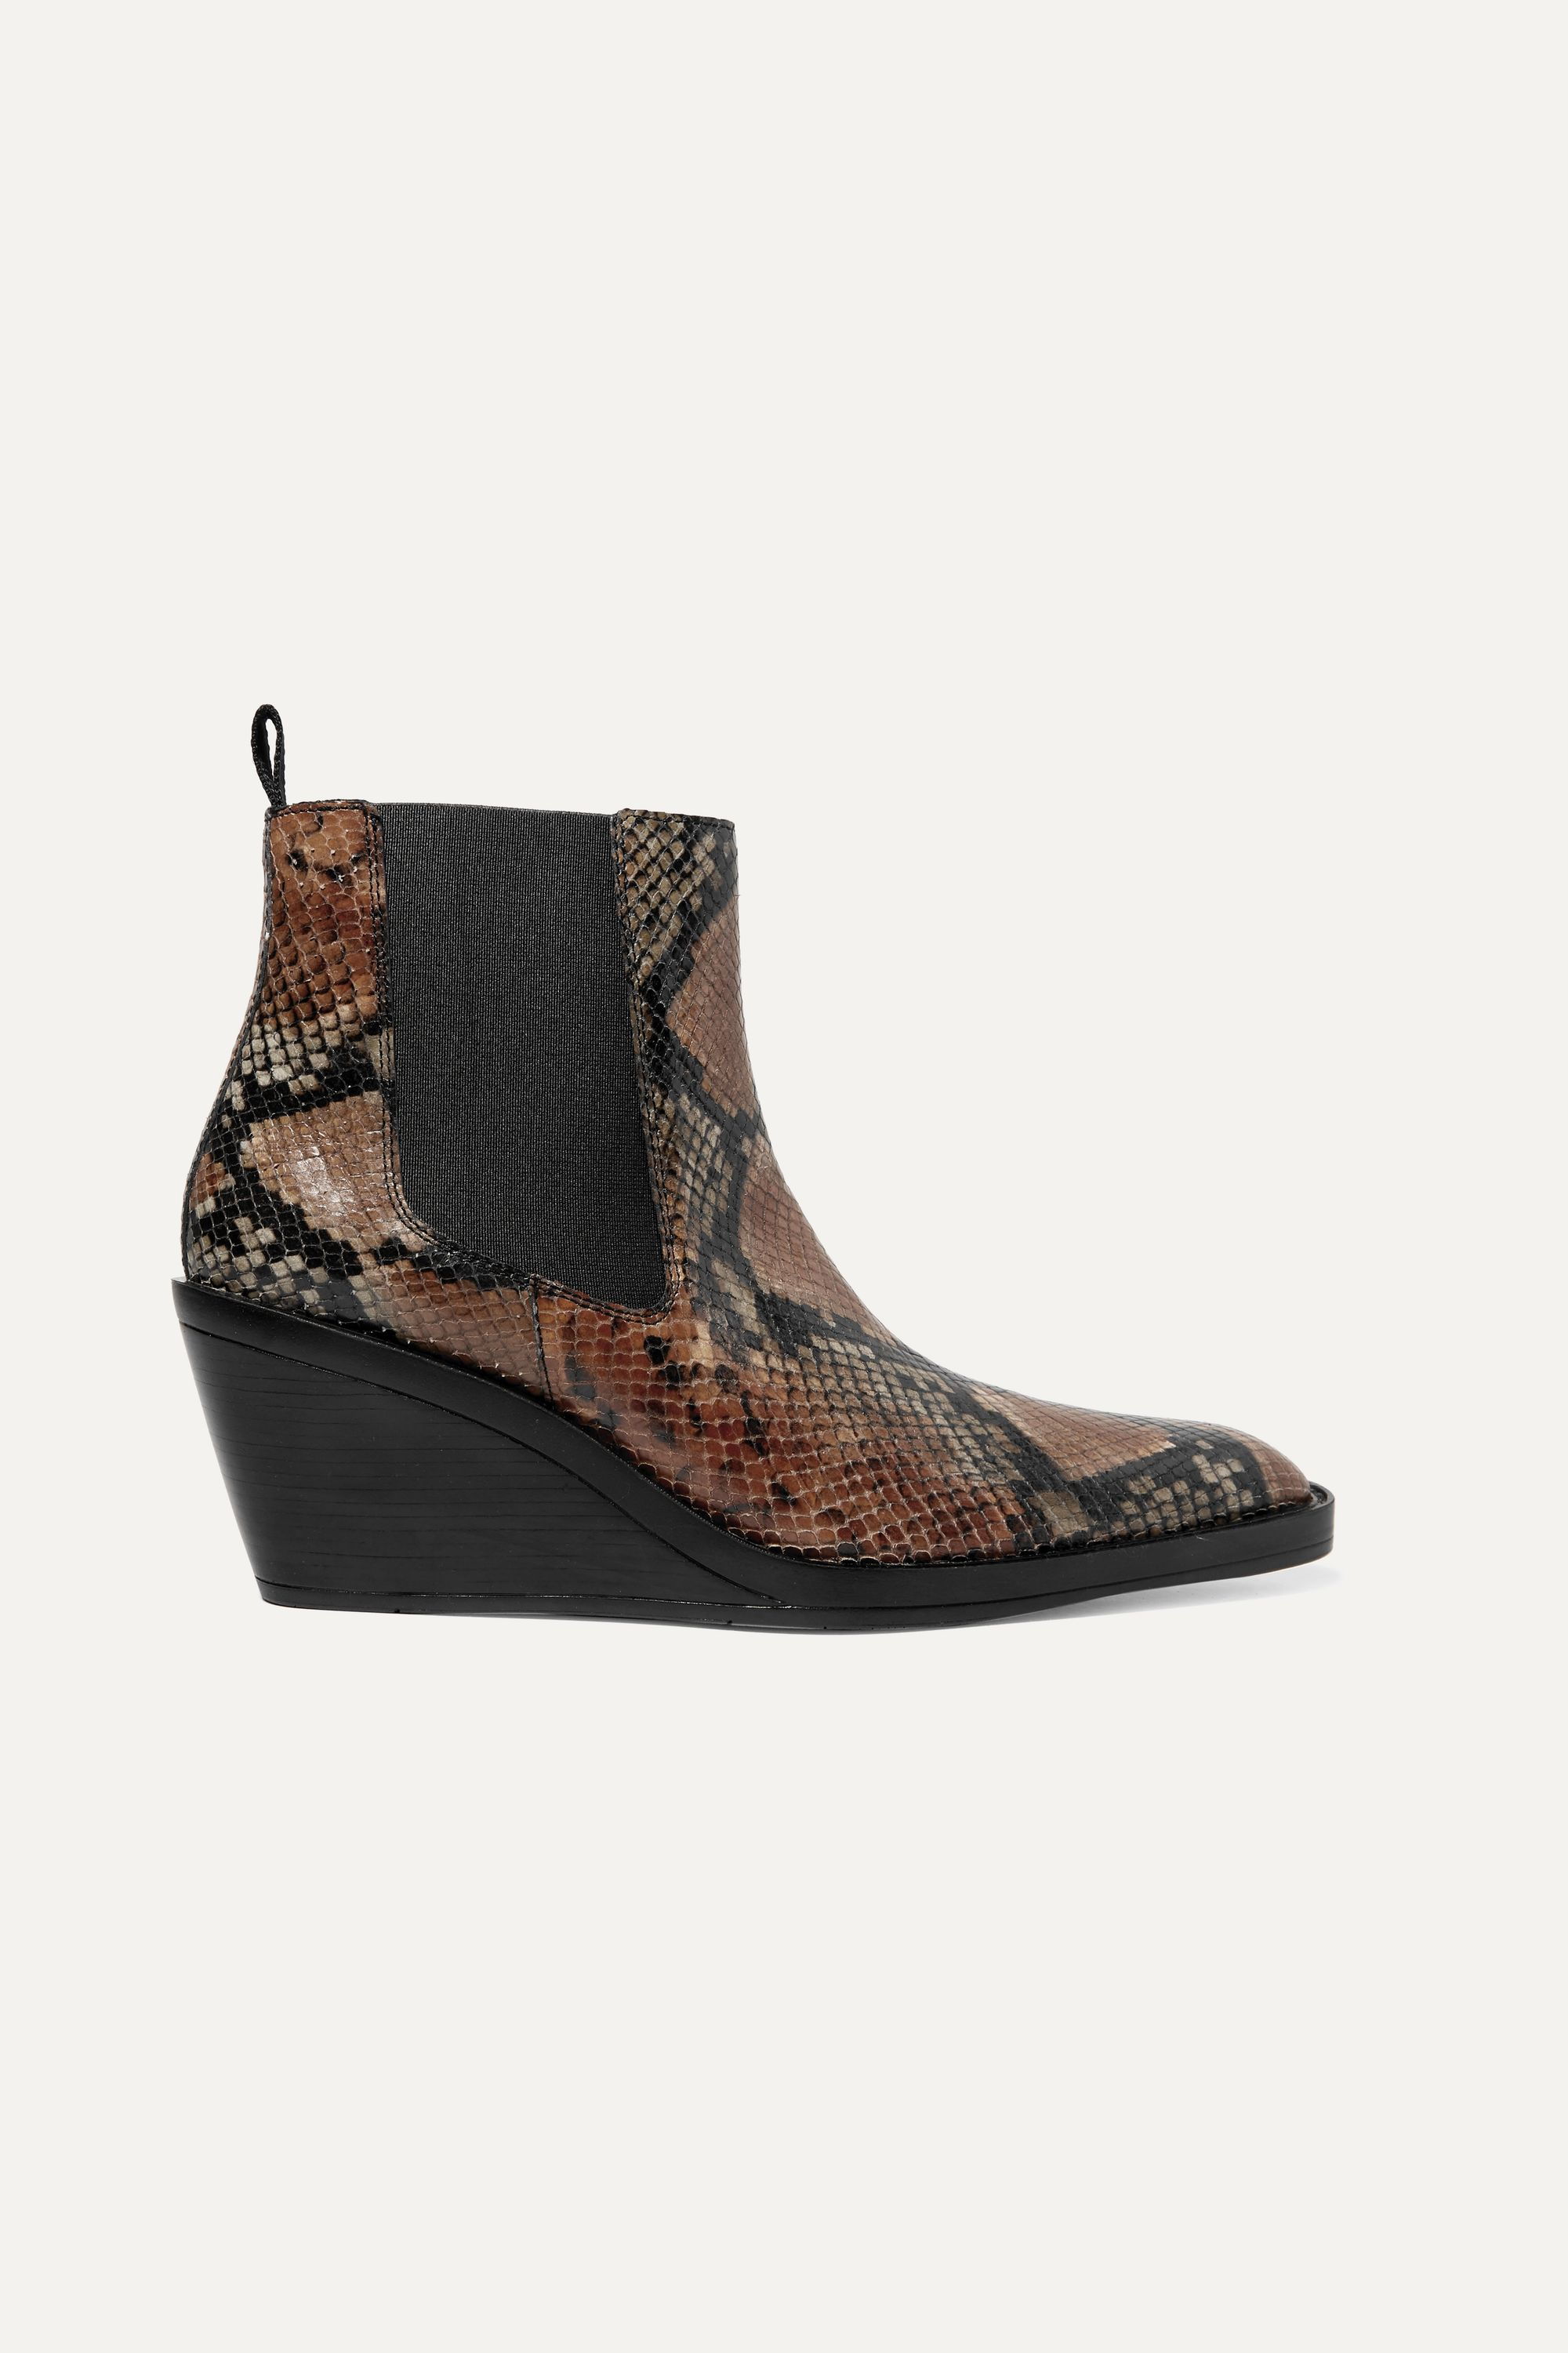 Acne Studios Snake-effect leather wedge ankle boots